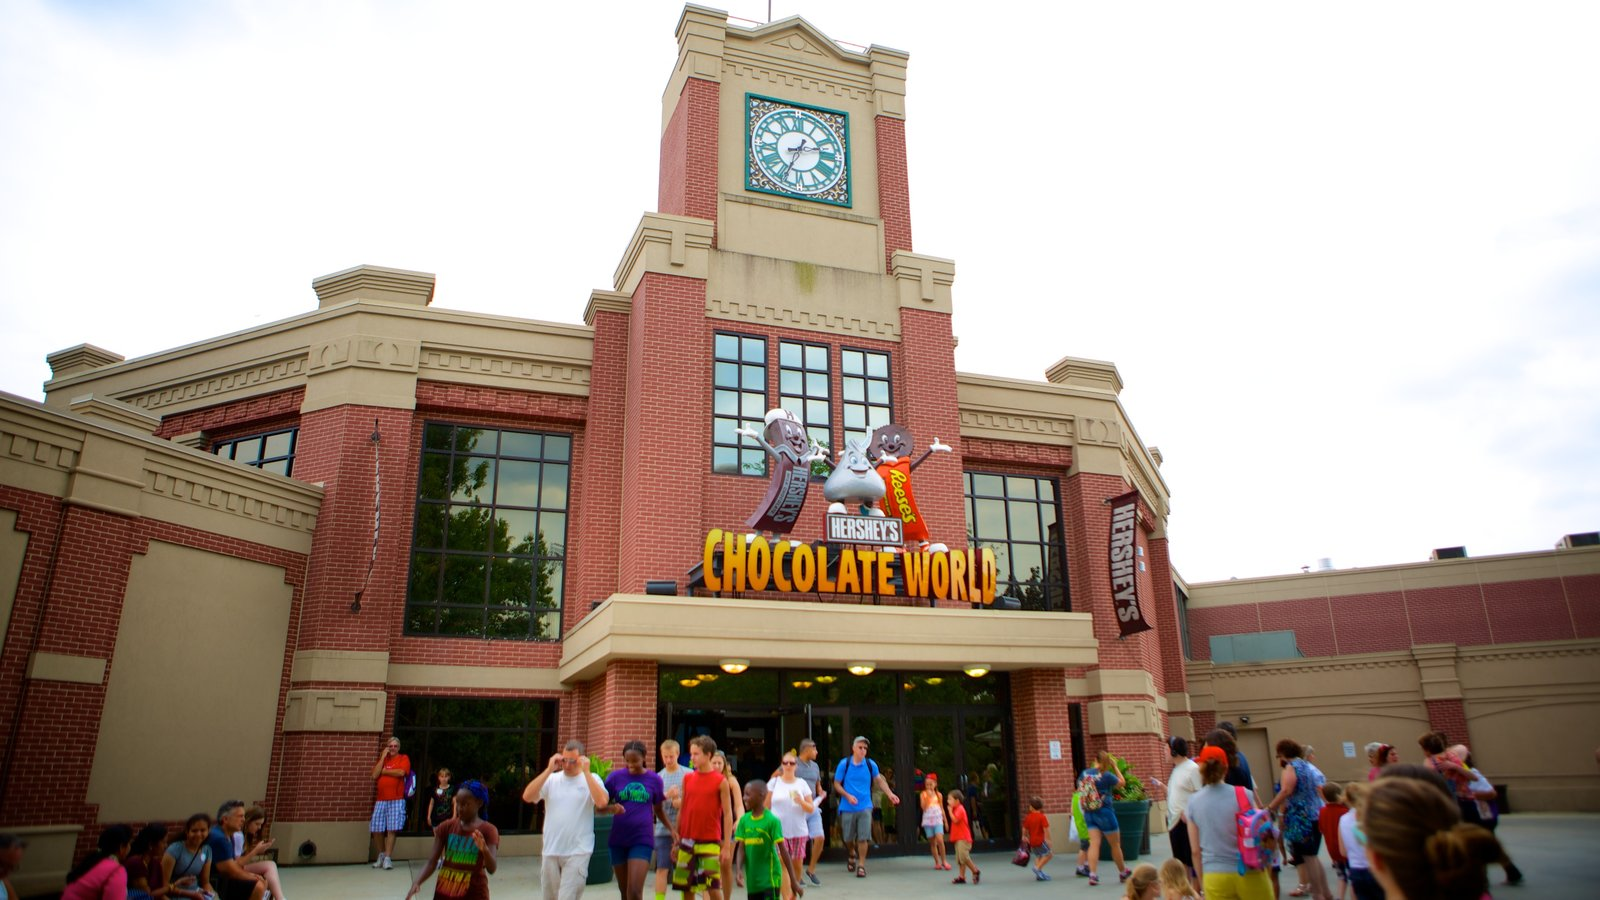 Hershey's Chocolate World Pictures: View Photos & Images of ...